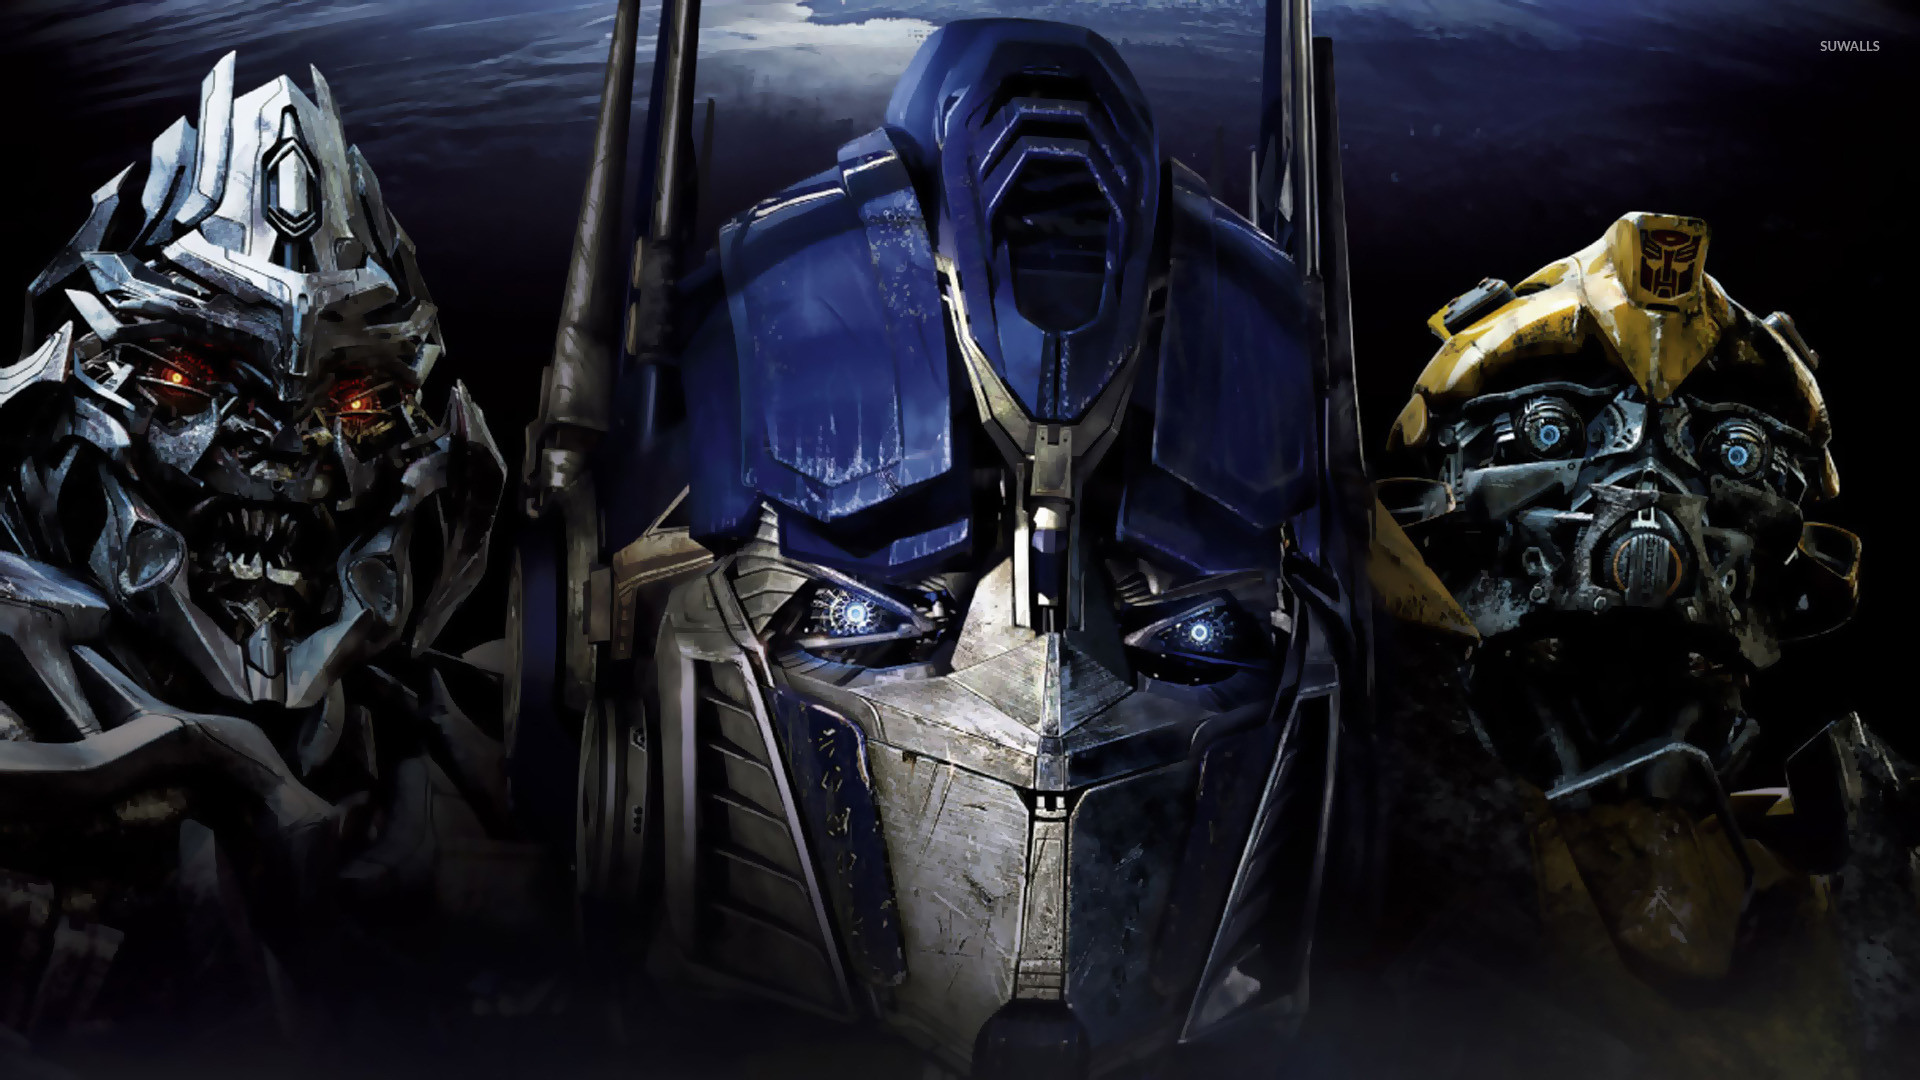 1920x1080 Megatron, Optimus Prime and Bumblebee - Transformers wallpaper